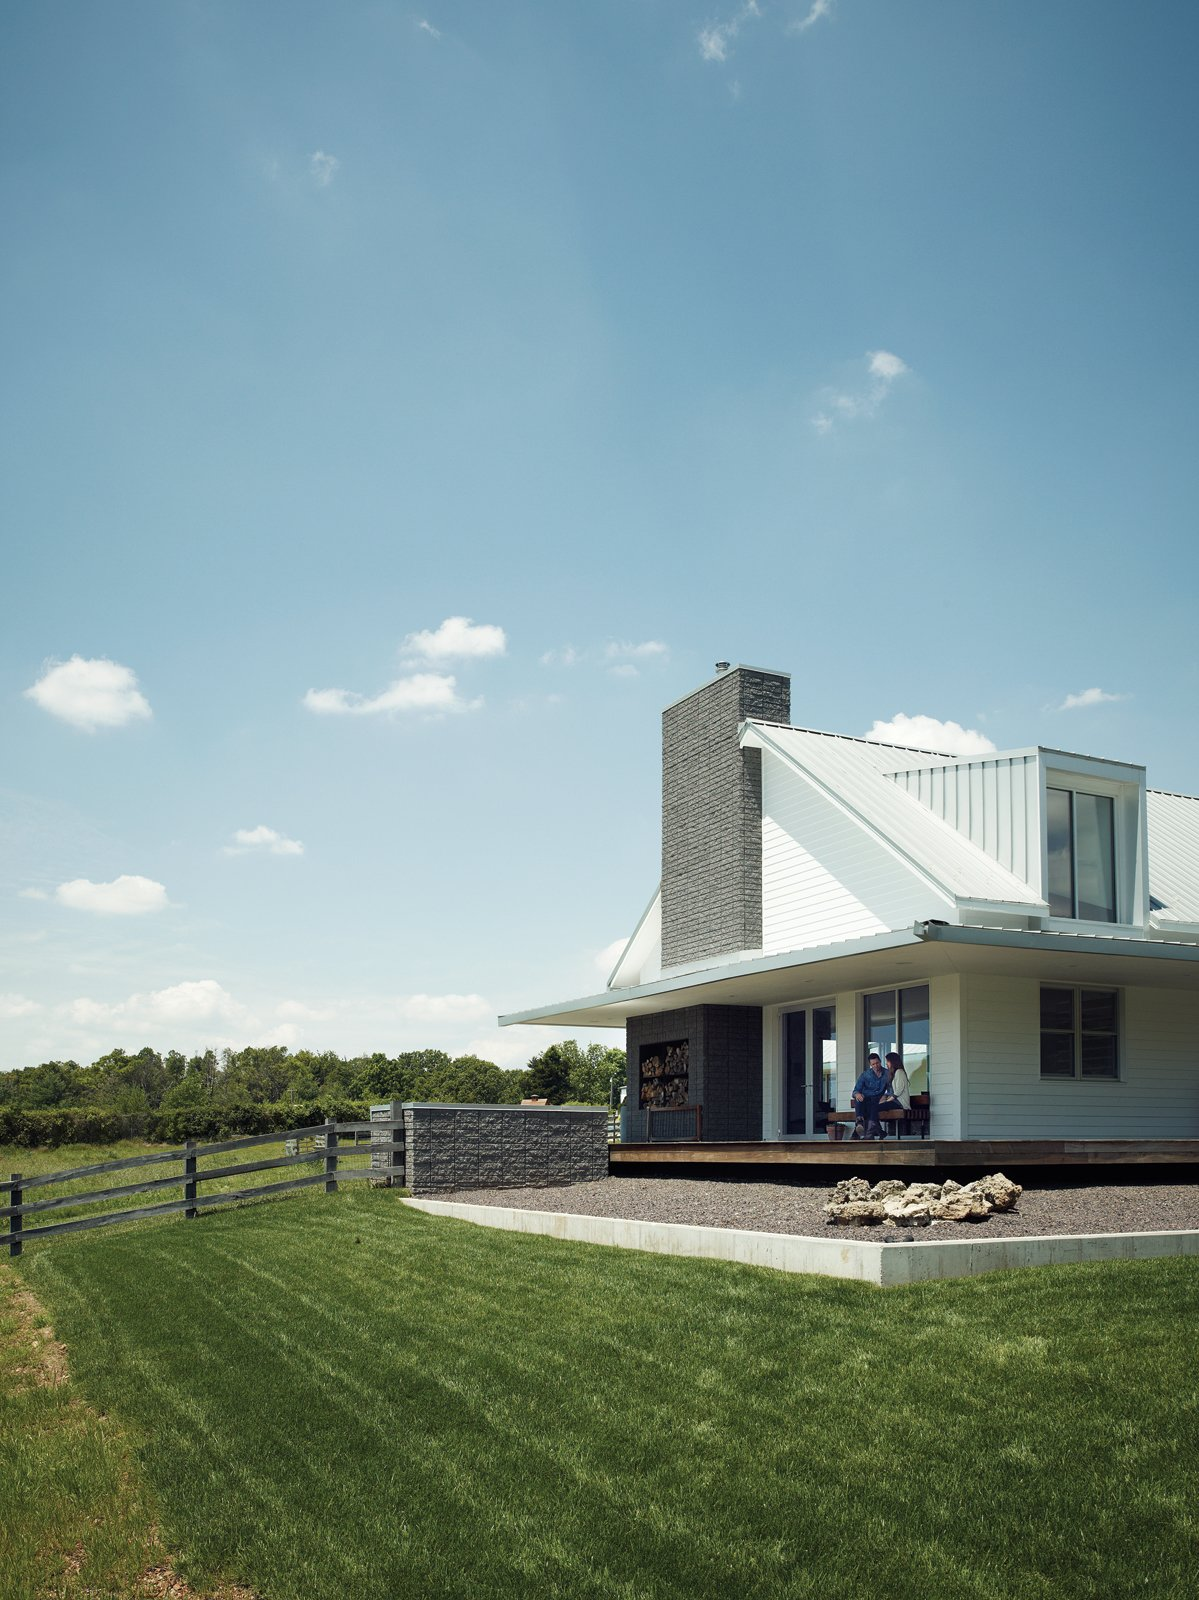 Grass, Large, Wood, Exterior, Metal, Wood, and Farmhouse Located in Springfield, Missouri, this modern farmhouse designed by Kansas-City based firm Hufft Projects exudes the traditional vernacular of Kansas with an updated take on the conventional form. The rolling hills and expansive land resemble the tone of quaint Marquette.  Exterior Wood Wood Photos from A Modern Farmhouse Recalls Old-Time Americana